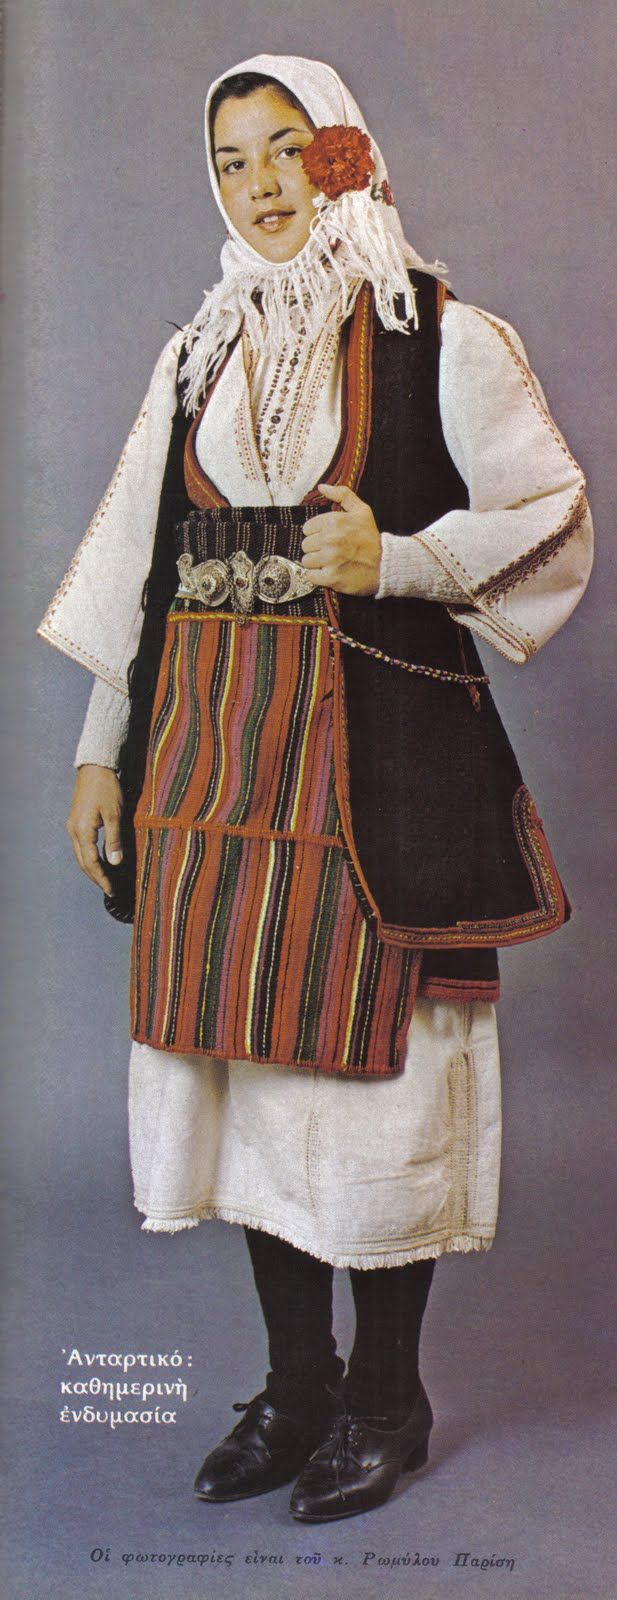 Traditional festive costume from the village of Antartiko (Greek Macedfonia). Clothing style: early 20th century.